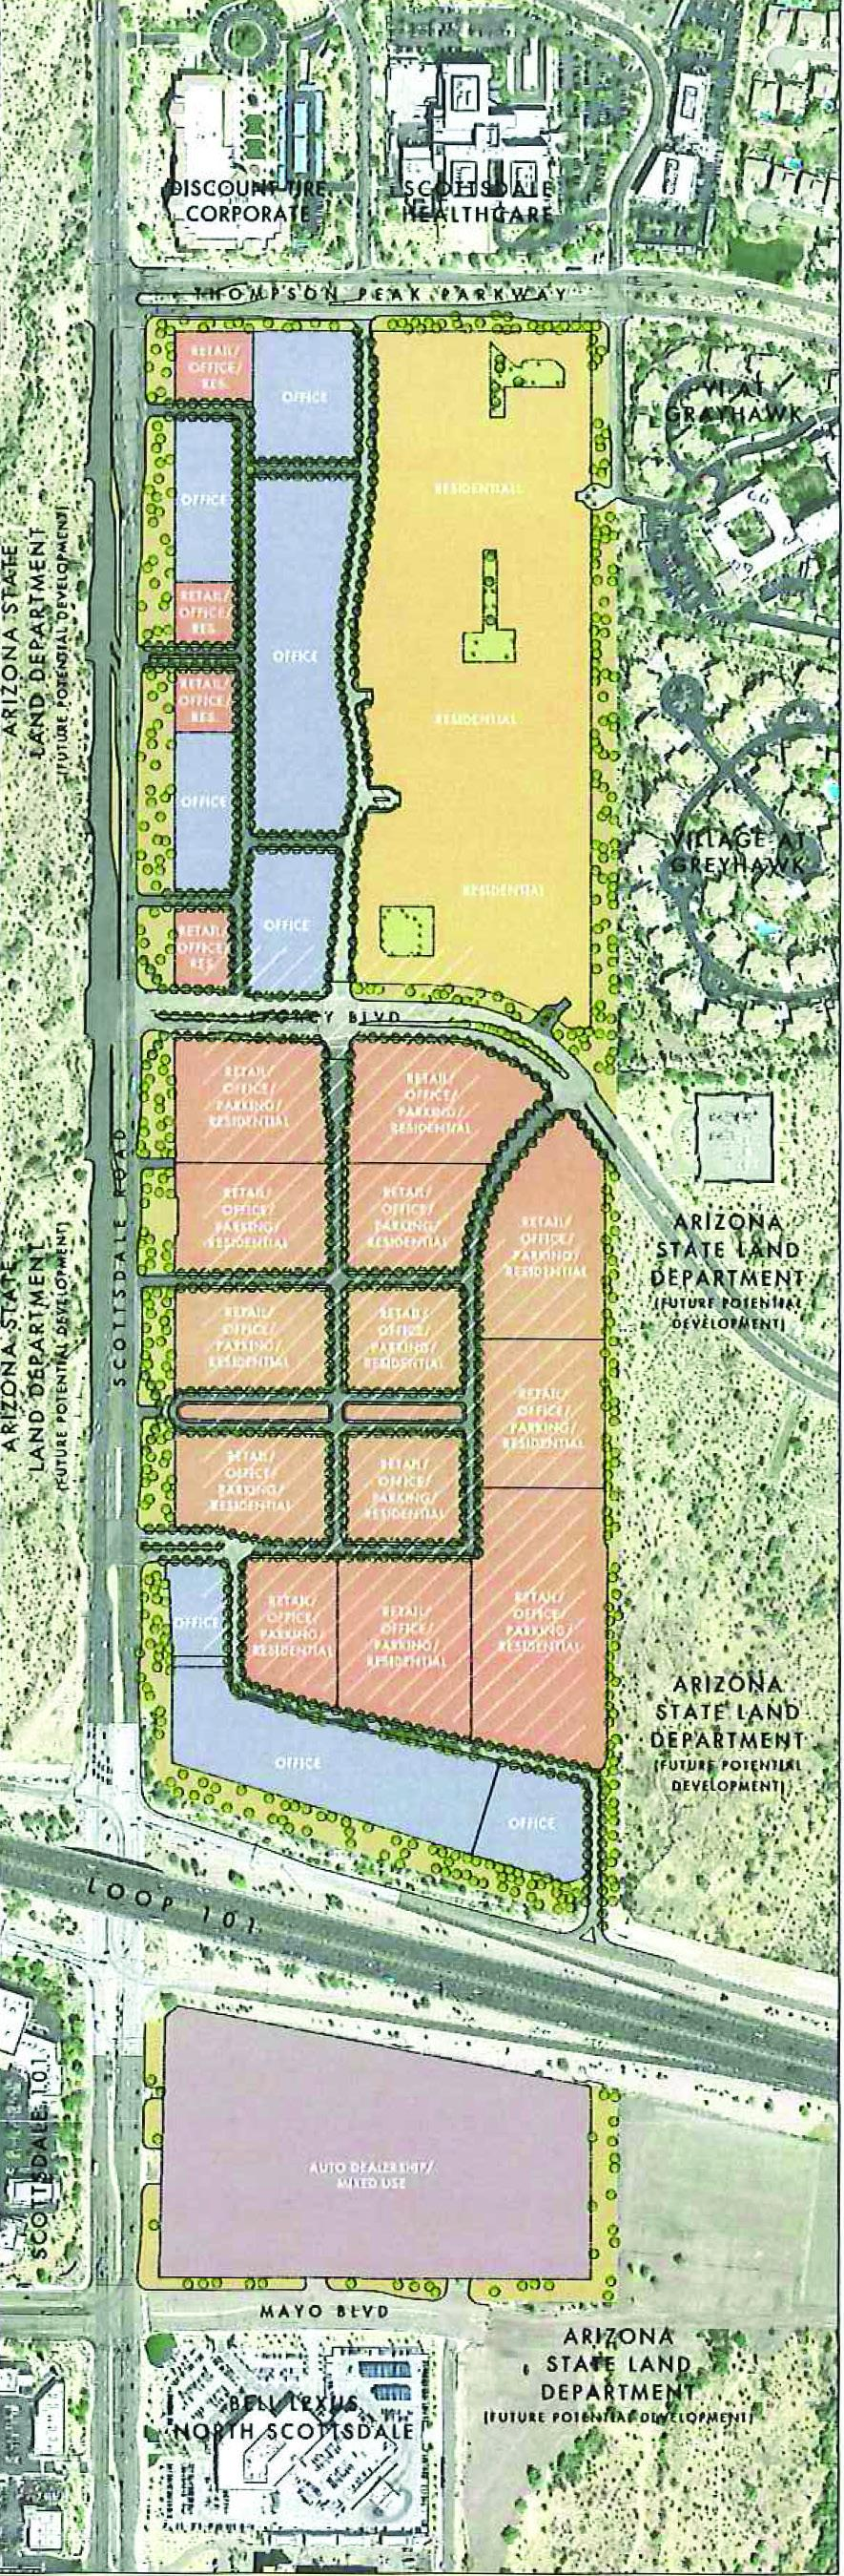 DMB seeks to build higher, add 1 million square feet at One